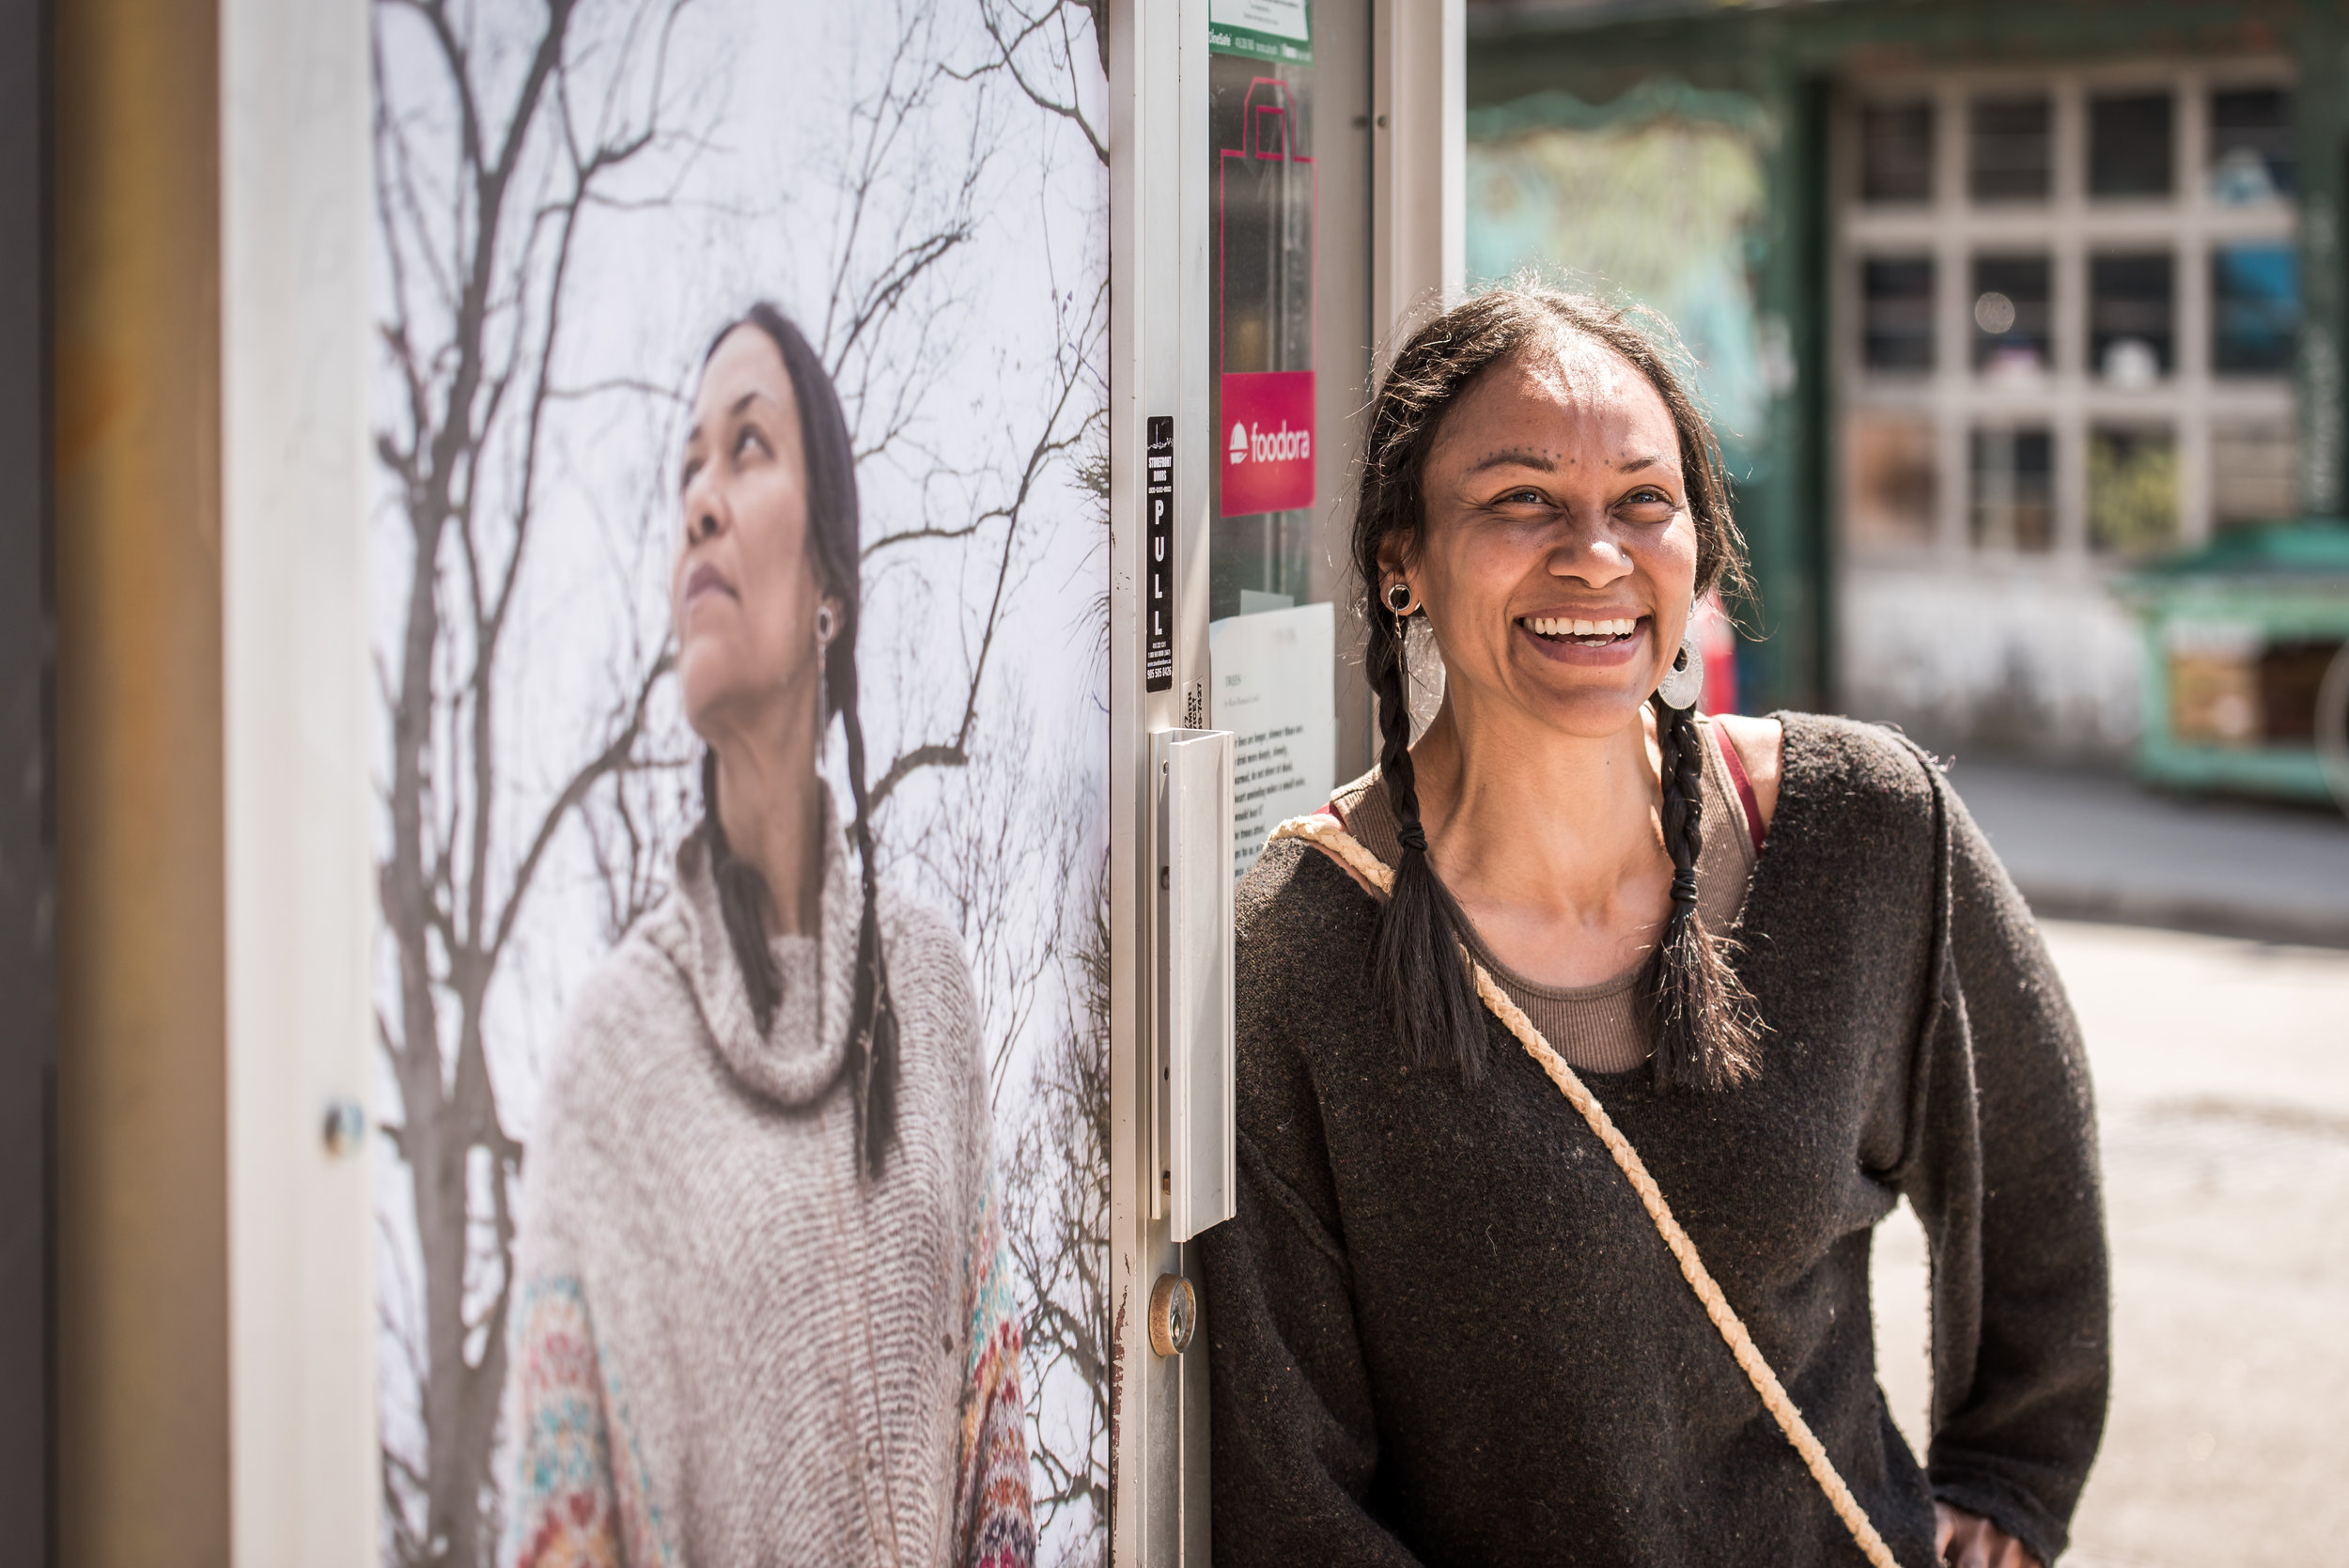 Carolynne Crawley, a child & youth worker, educator and holistic nutritionist, poses next to her portrait.   PHOTO: Ben Marans